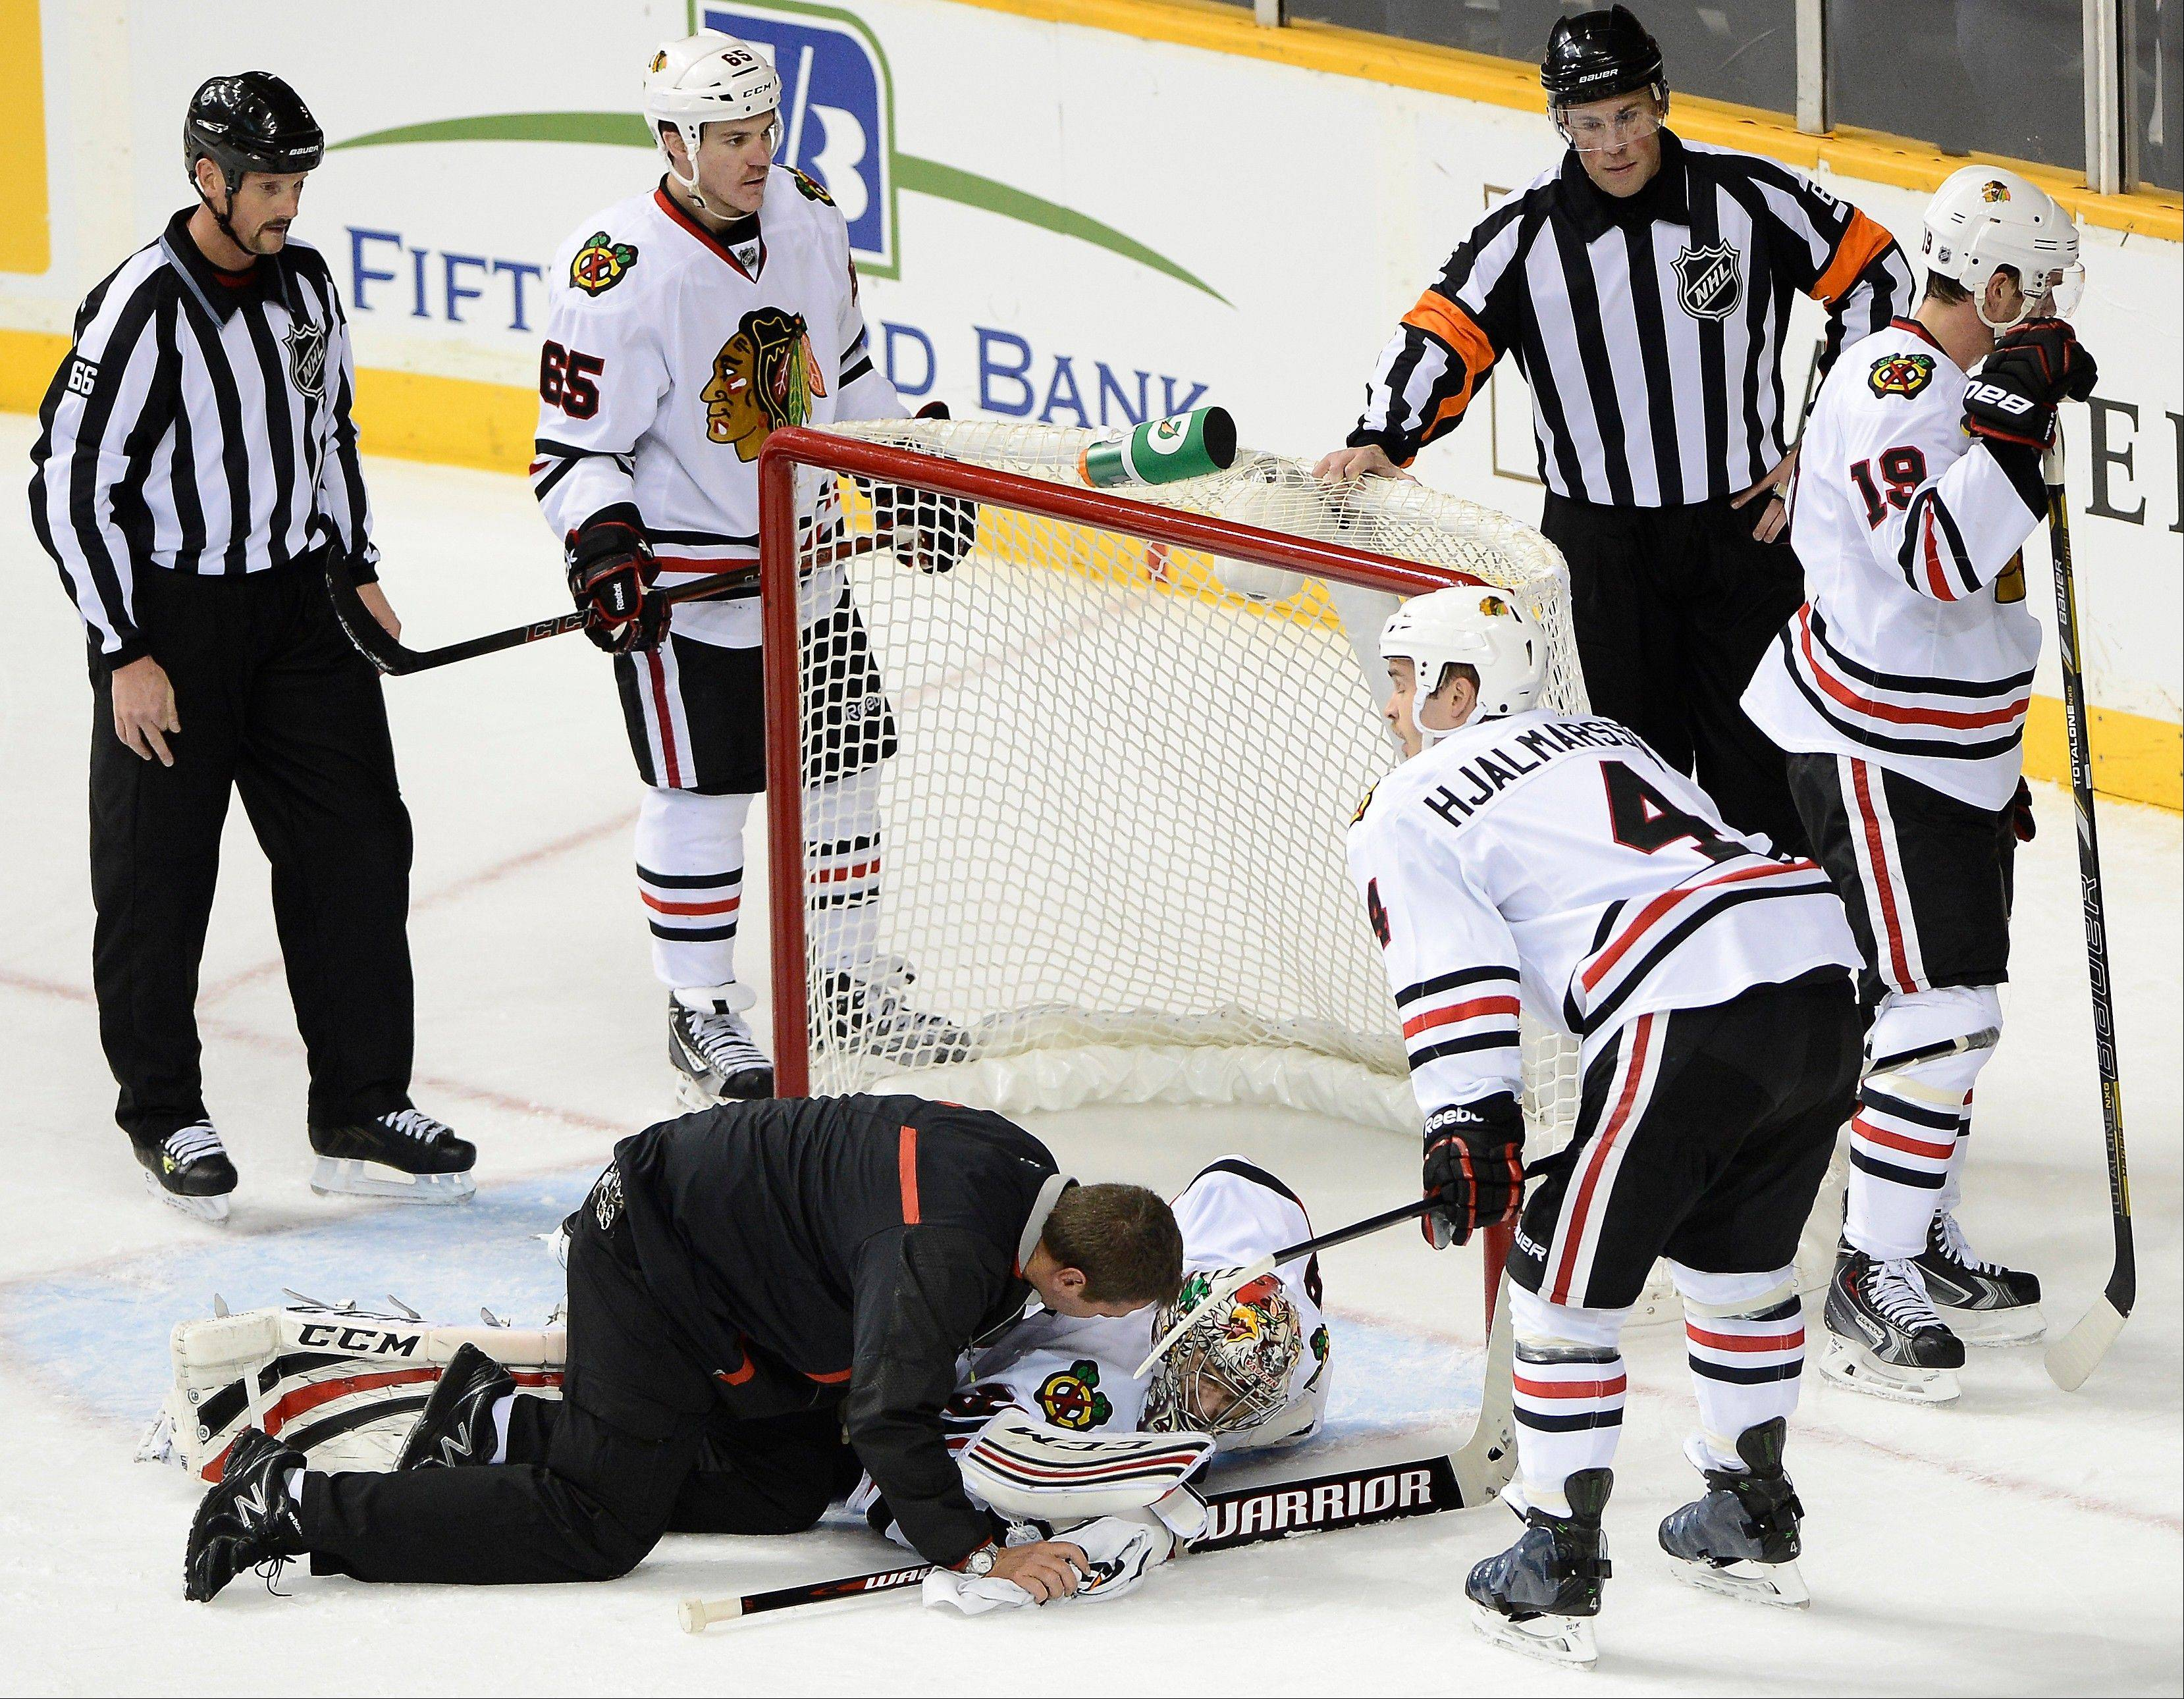 Blackhawks goalie Nikolai Khabibulin is attended to after injuring his left leg in the first period Saturday night.